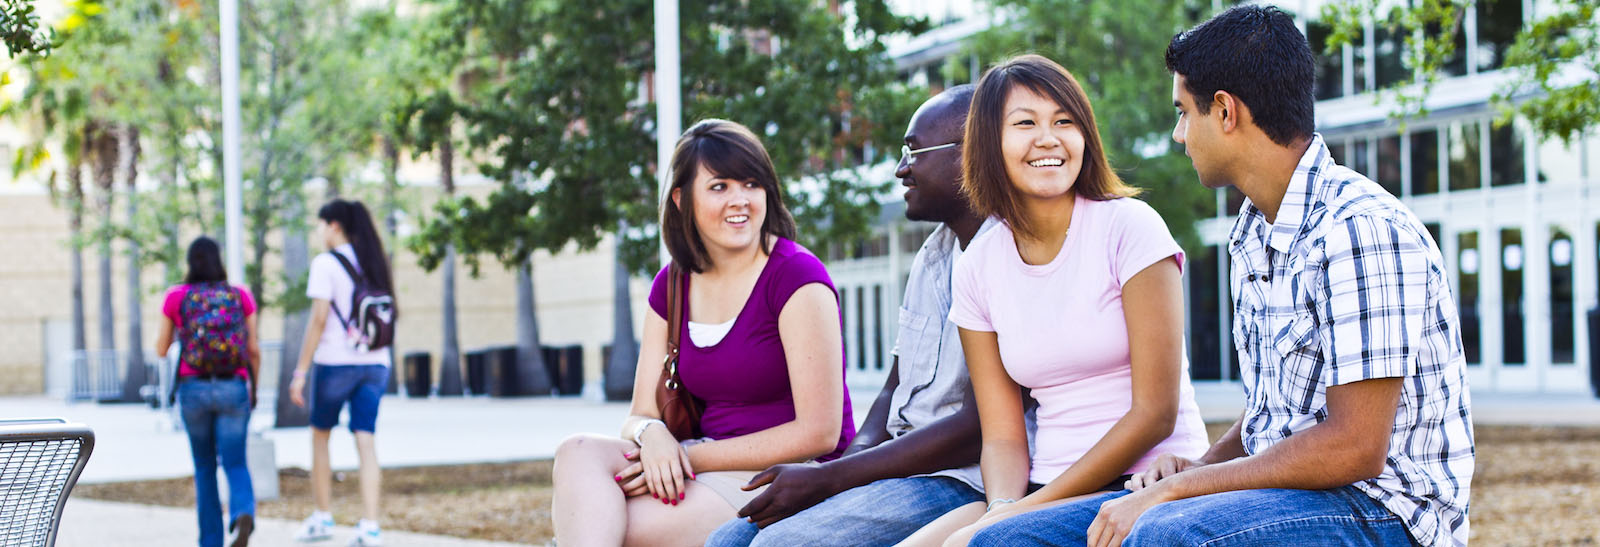 ucf students sitting on bench while chatting